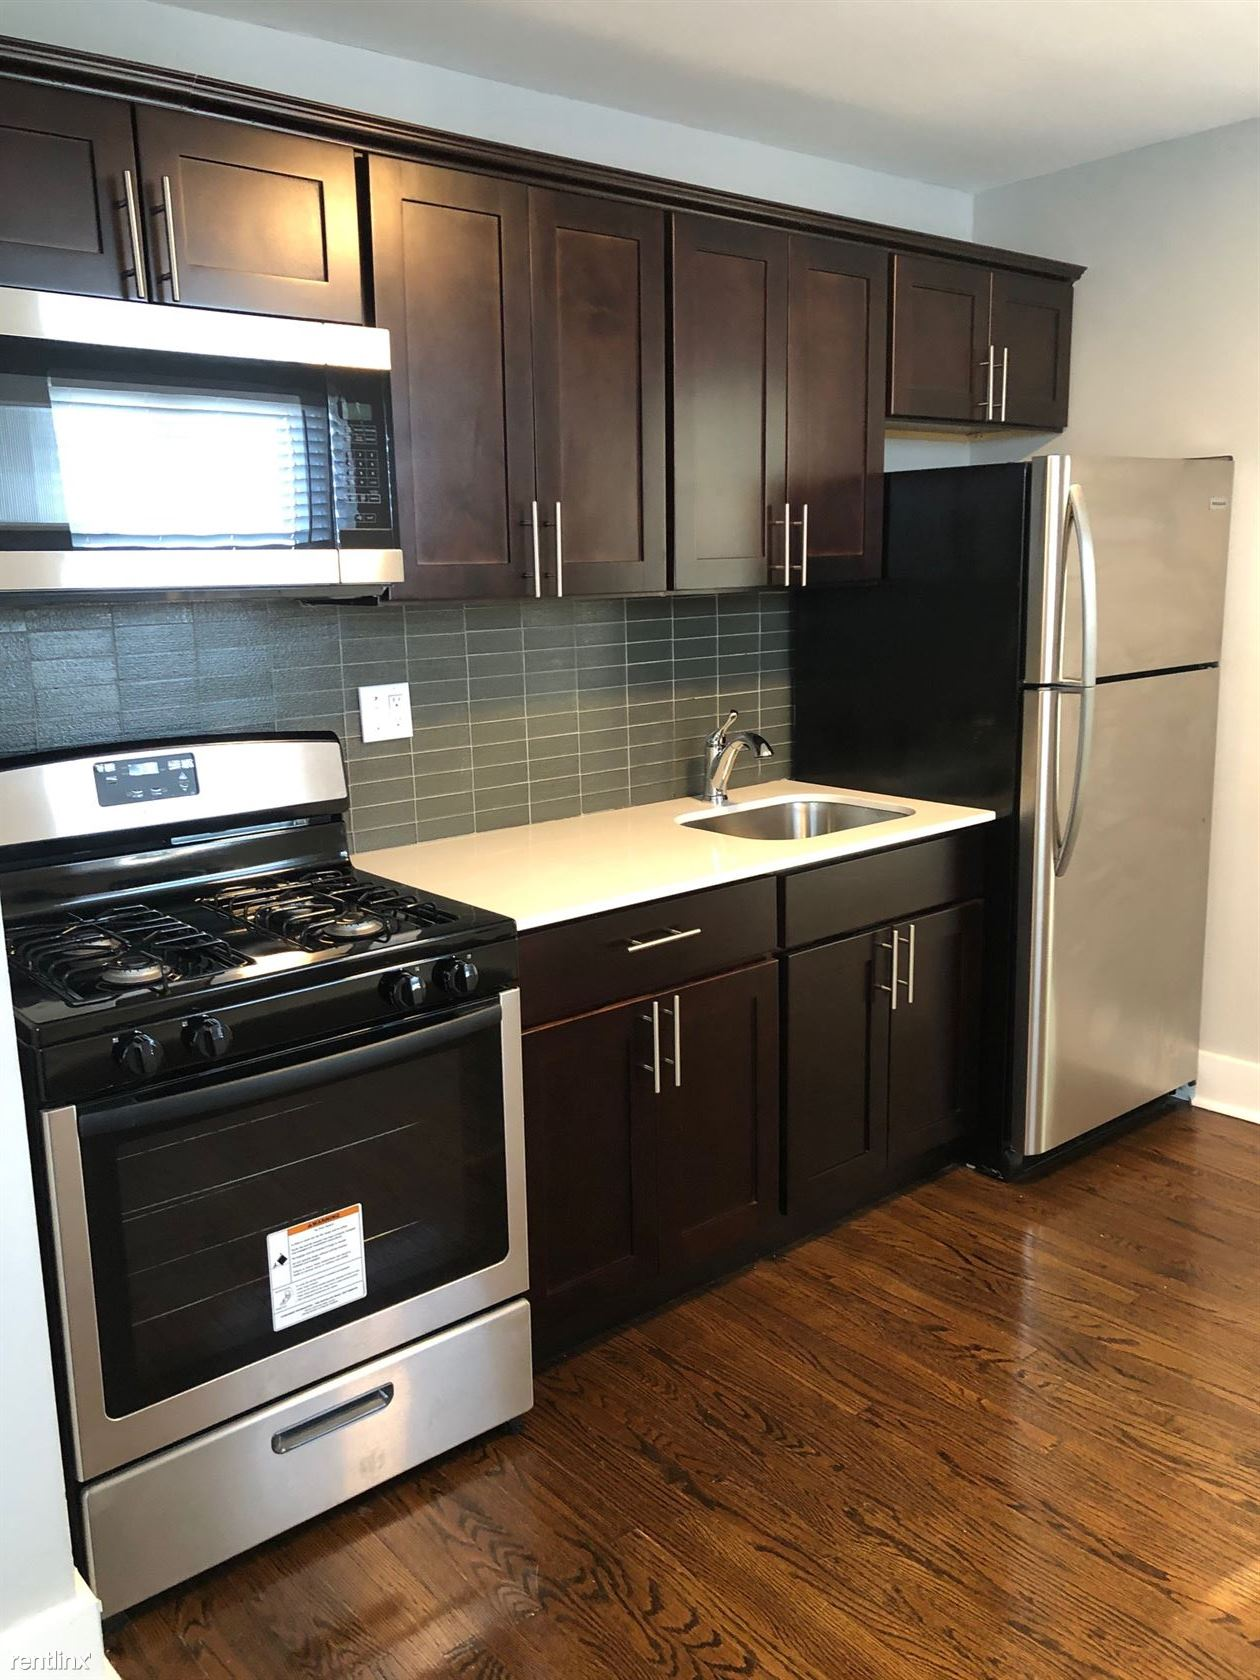 6738 Rising Sun Ave - 995USD / month